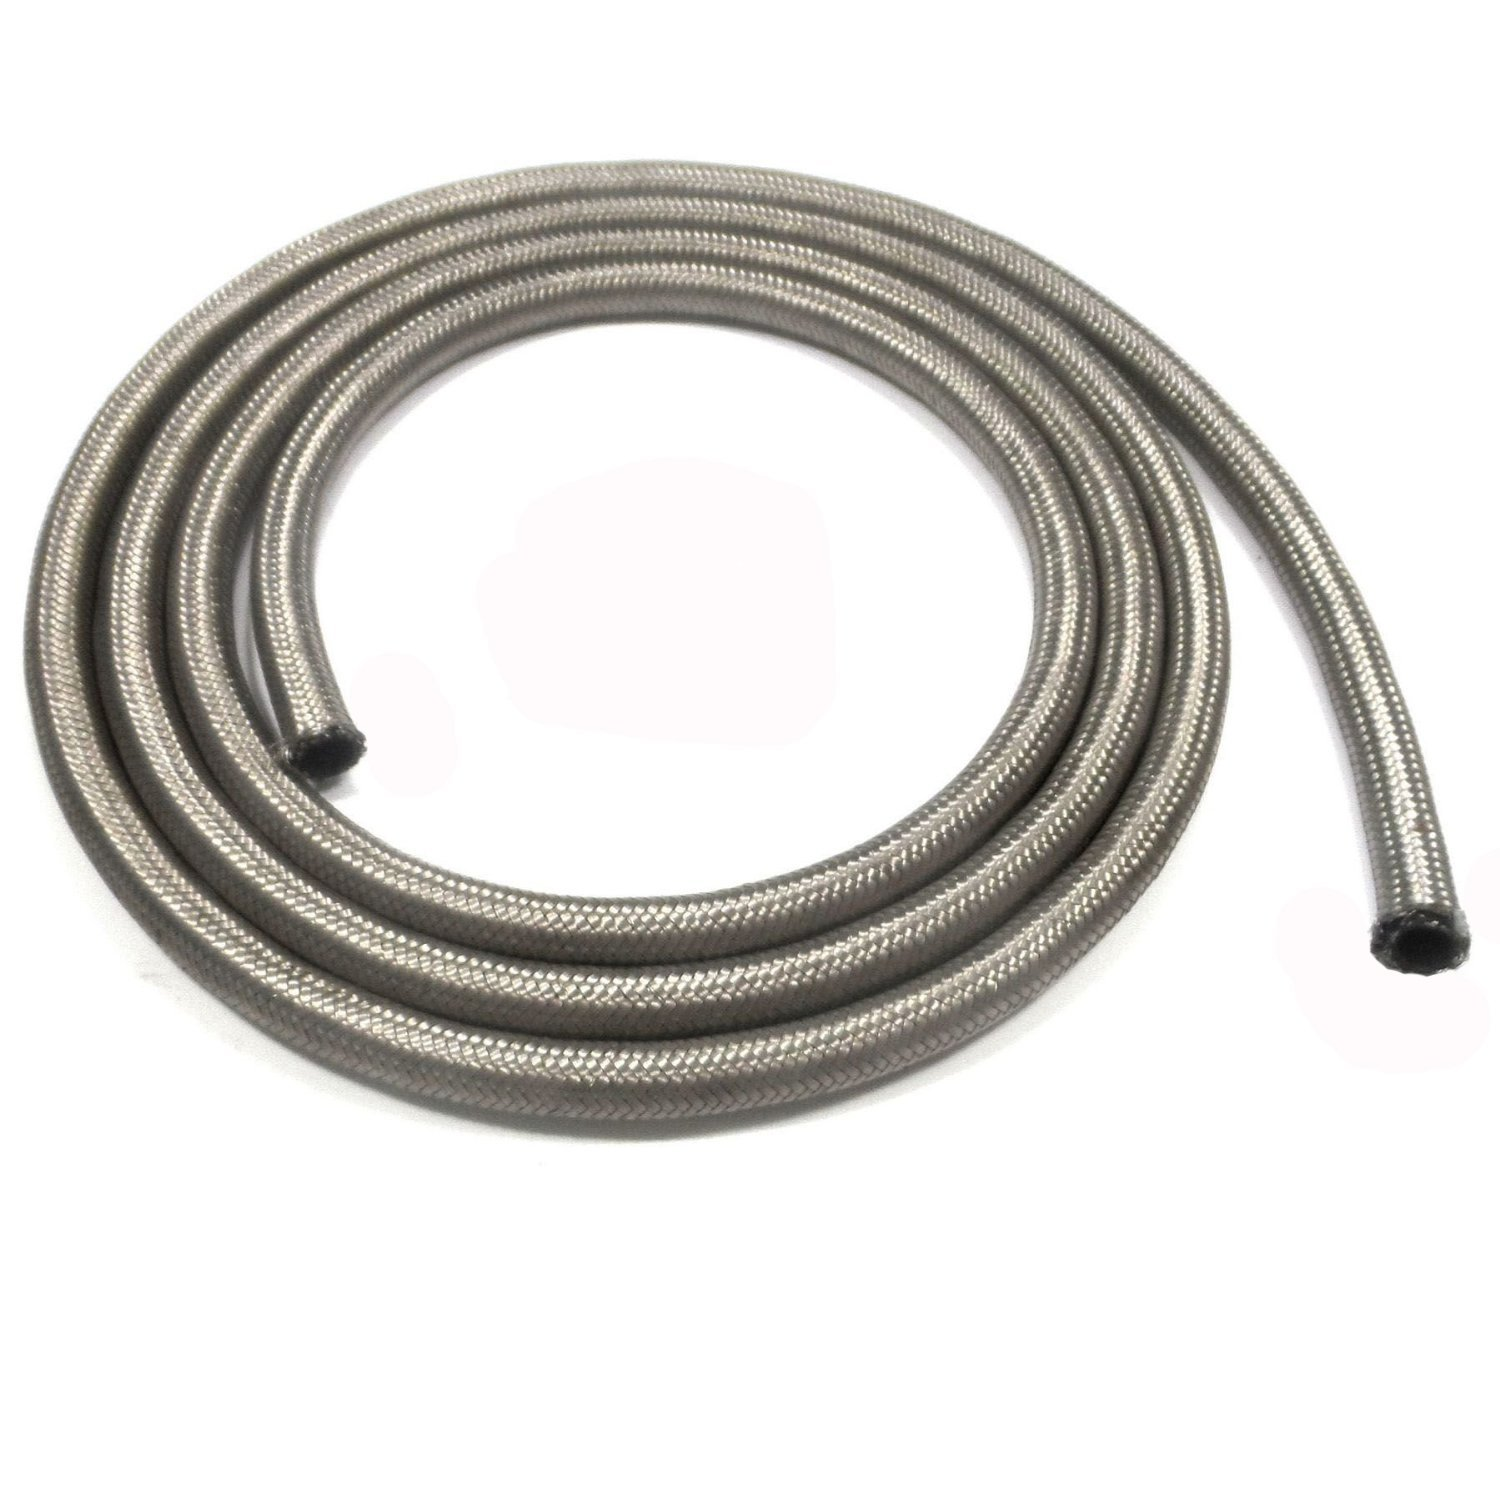 Stainless Steel Braided Fuel Line Hose 10FEET (AN6, Silver)